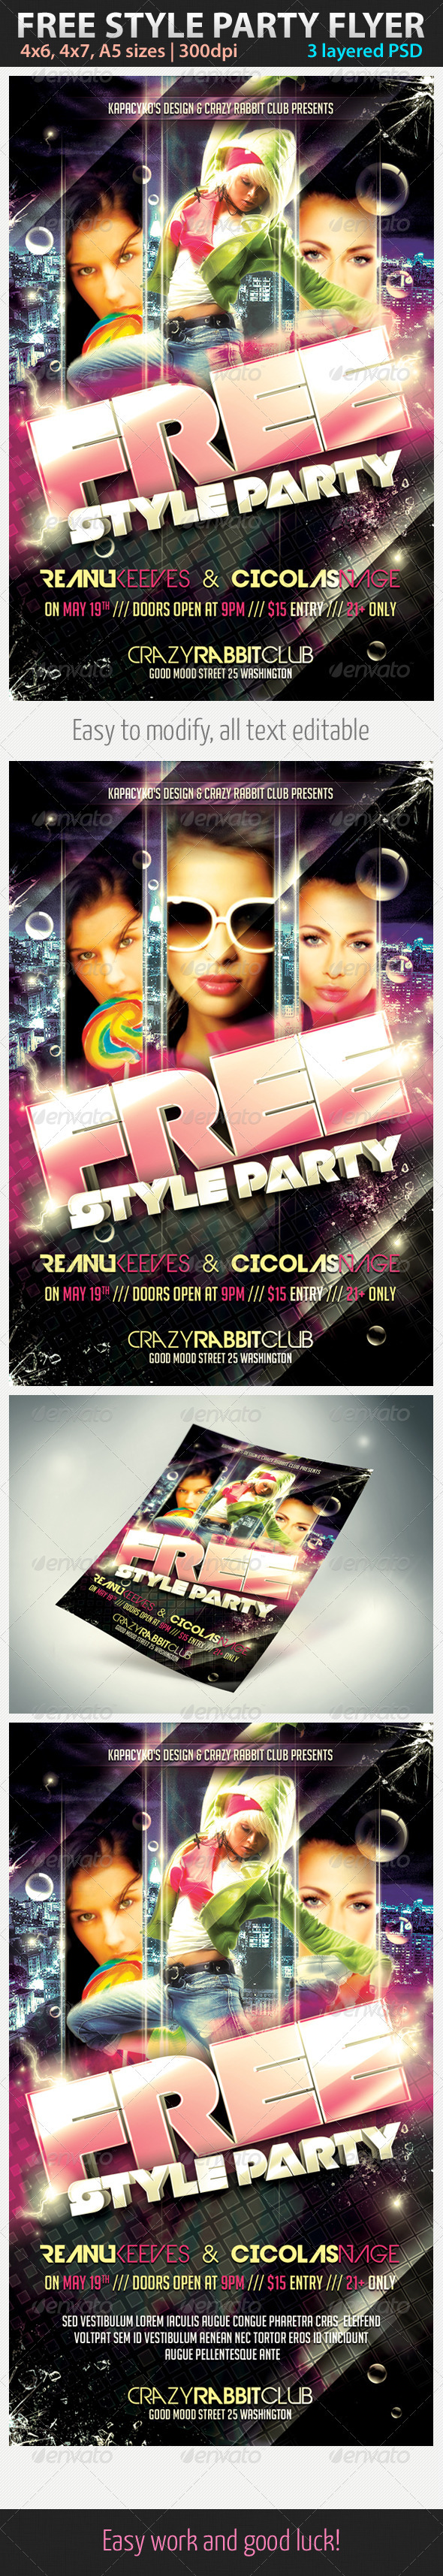 Free Style Party Flyer - Clubs &amp; Parties Events